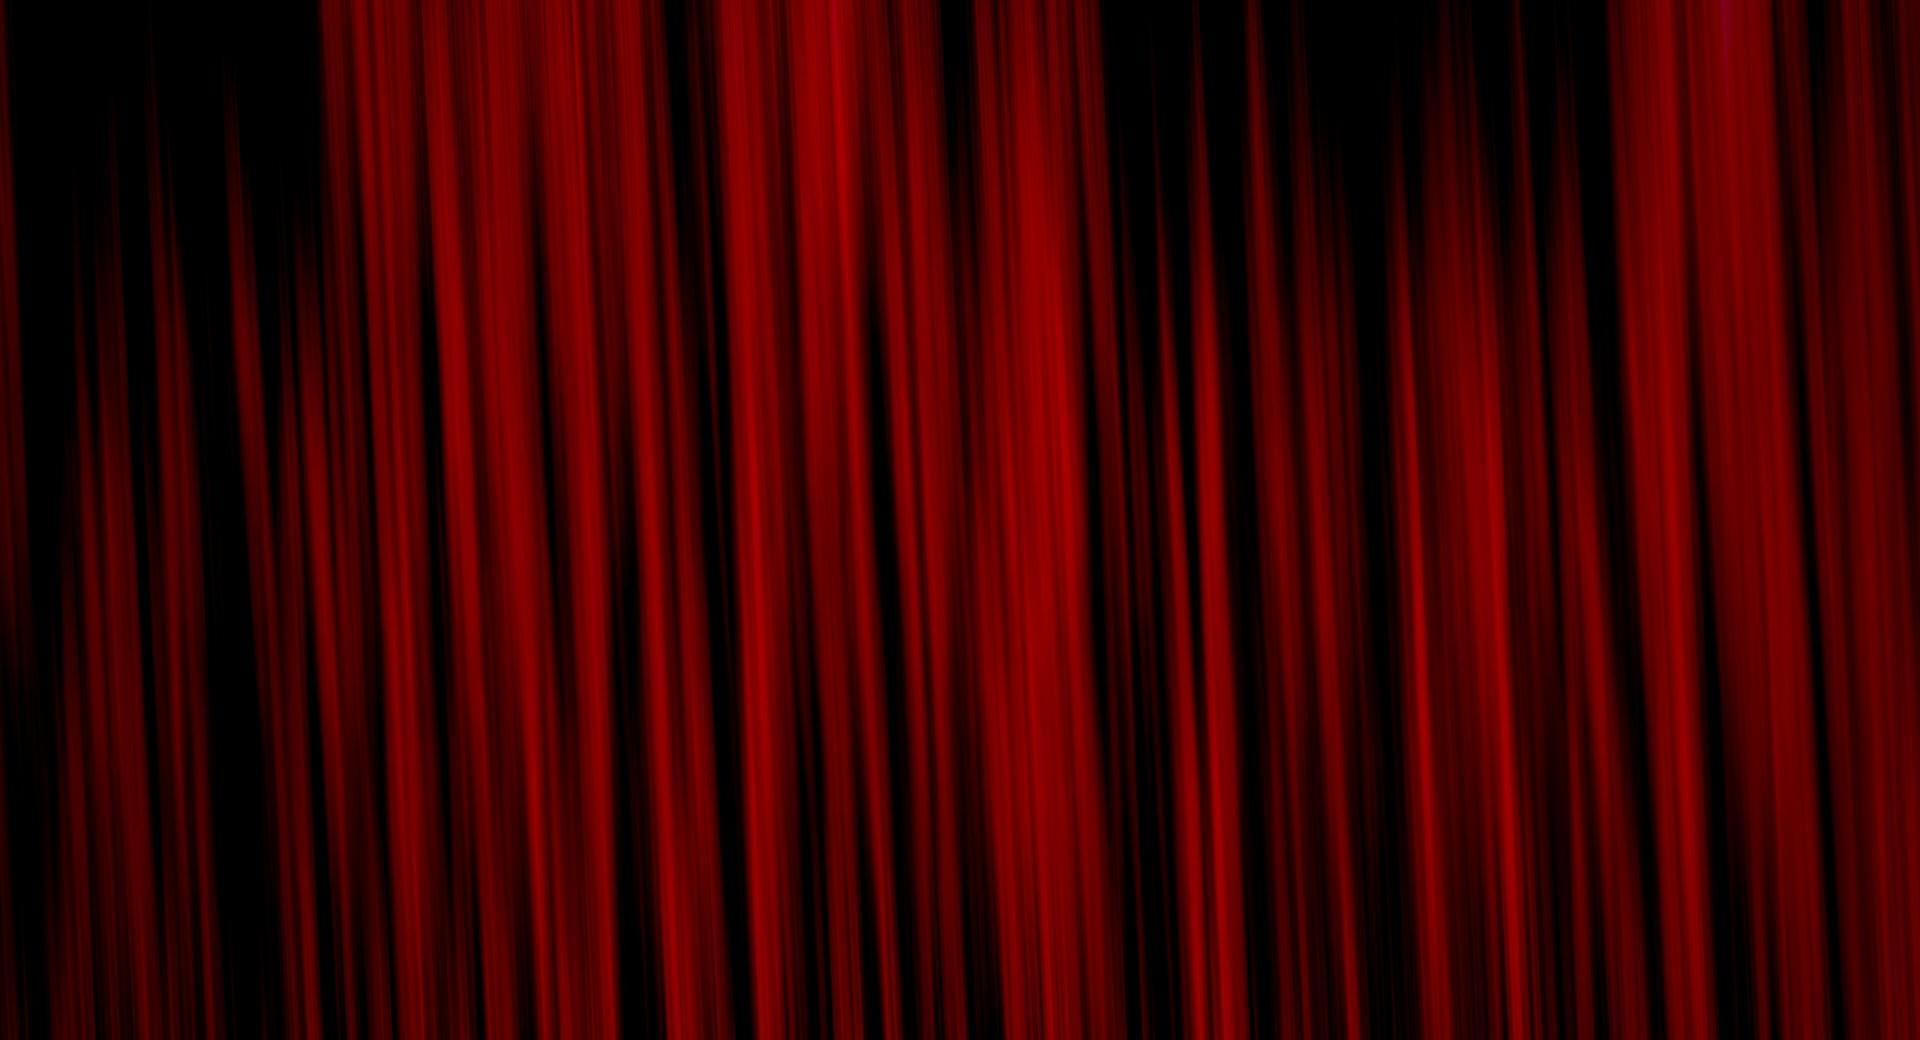 Red Curtain wallpapers HD quality